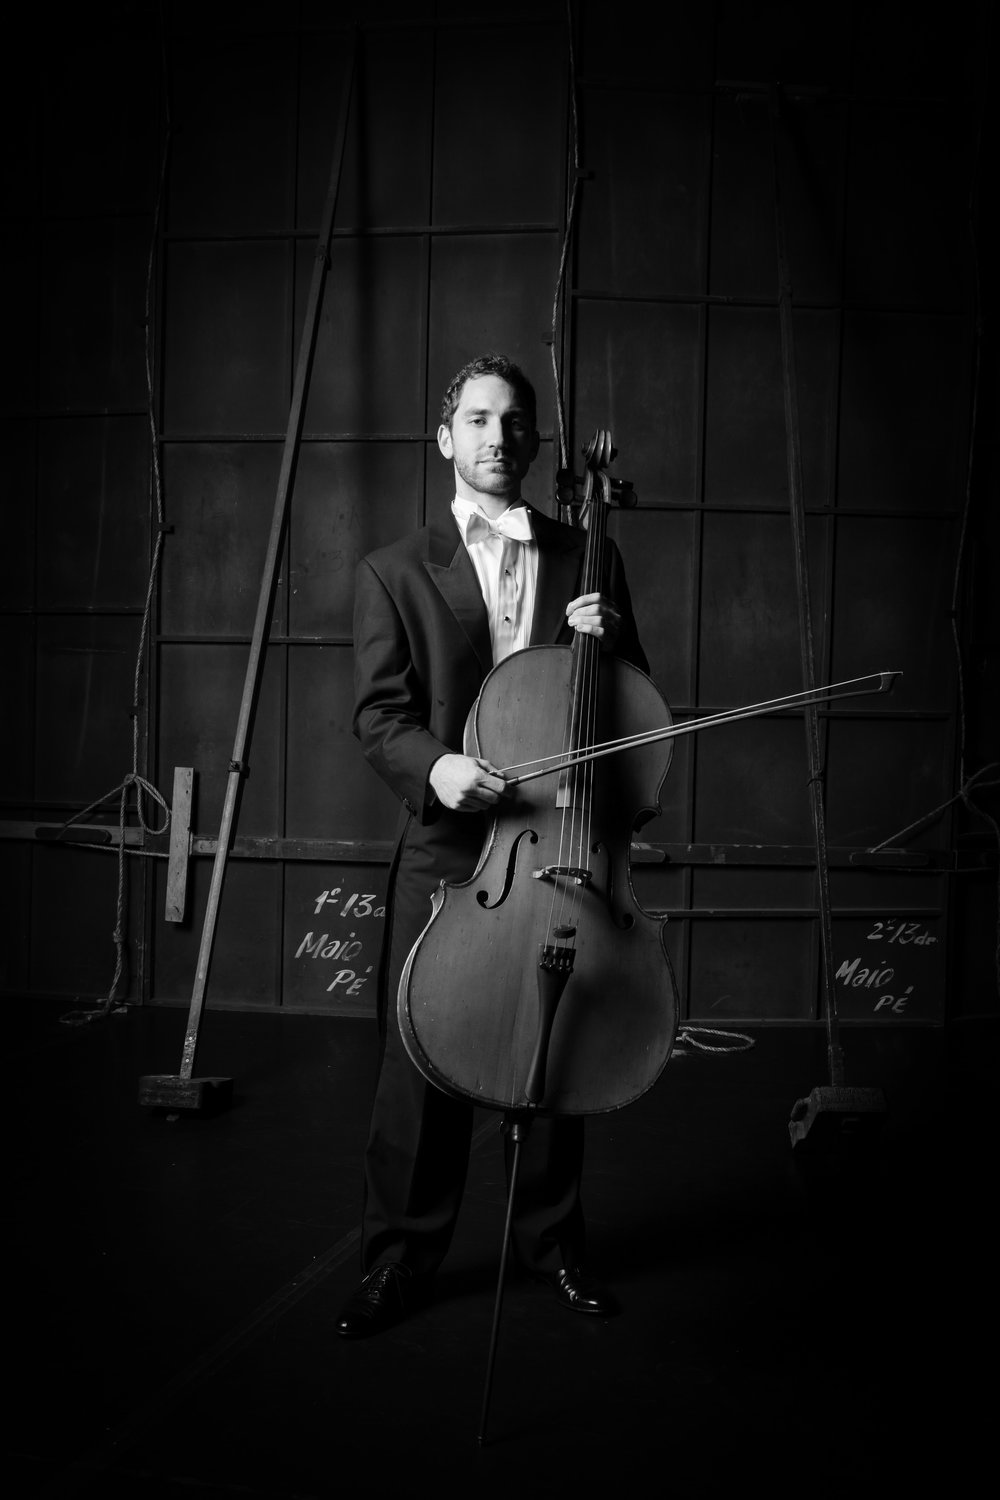 Eric Alterman, cello - Eric Alterman, born and raised in New York City, began music studies at a young age at the Mannes College of Music. As cellist of the Delgani String Quartet, Assistant Principal Cellist of the Eugene Symphony, and member of the Oregon Mozart Players, he leads an active career performing throughout the state of Oregon. Prior to residing in Oregon, Alterman performed for 5 seasons as Assistant Principal Cellist of the Orquestra Sinfônica Brasileira, based in Rio de Janeiro. Alterman completed studies at Boston University and Brandeis University, where his teachers included Rhonda Rider, Marc Johnson, and Joshua Gordon.2018-2019 Season Sponsor: Carol Crumlish